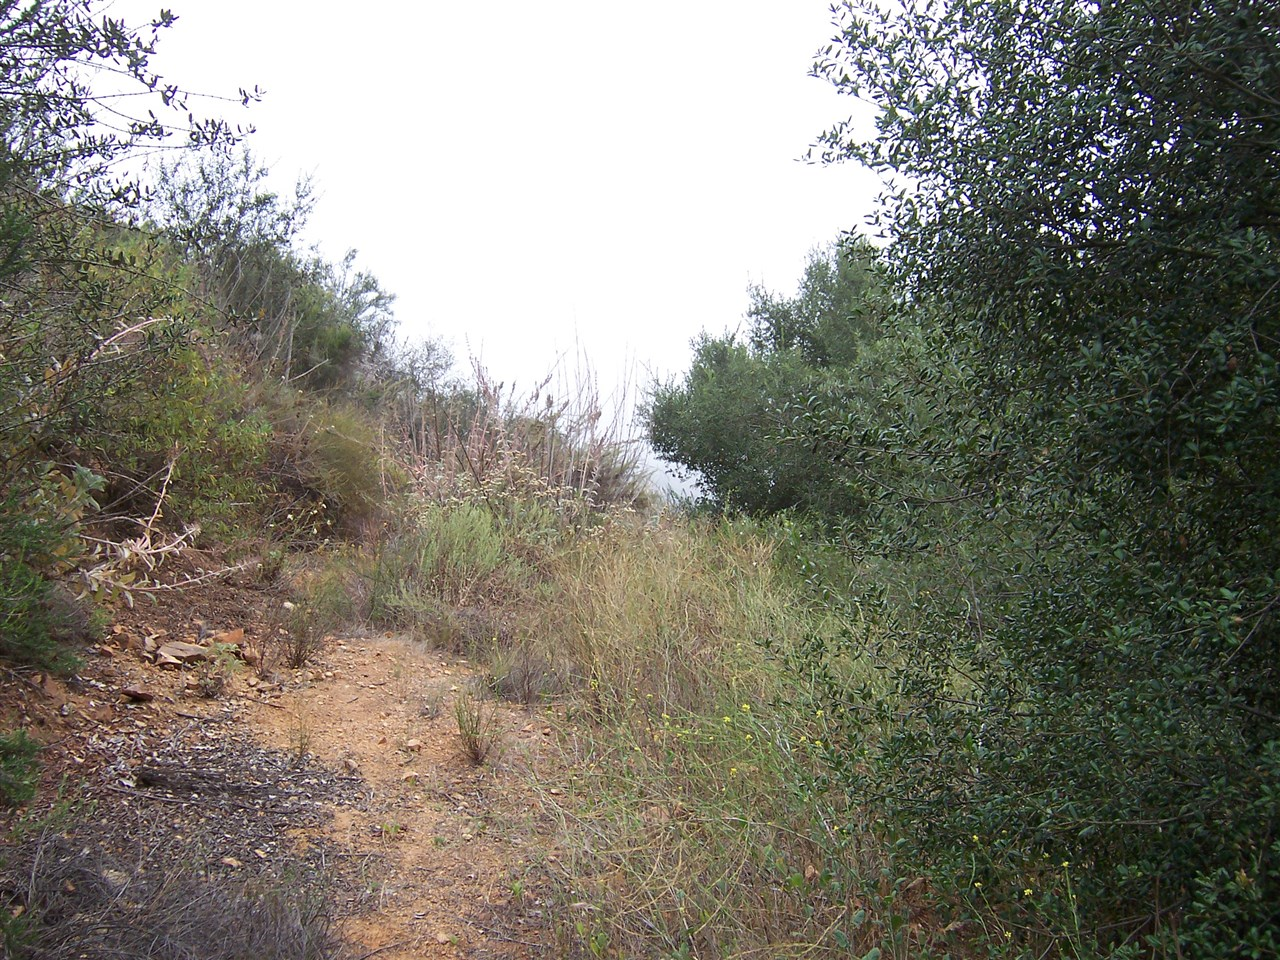 Main Photo: FALLBROOK Property for sale: 1015 RICE  CANYON